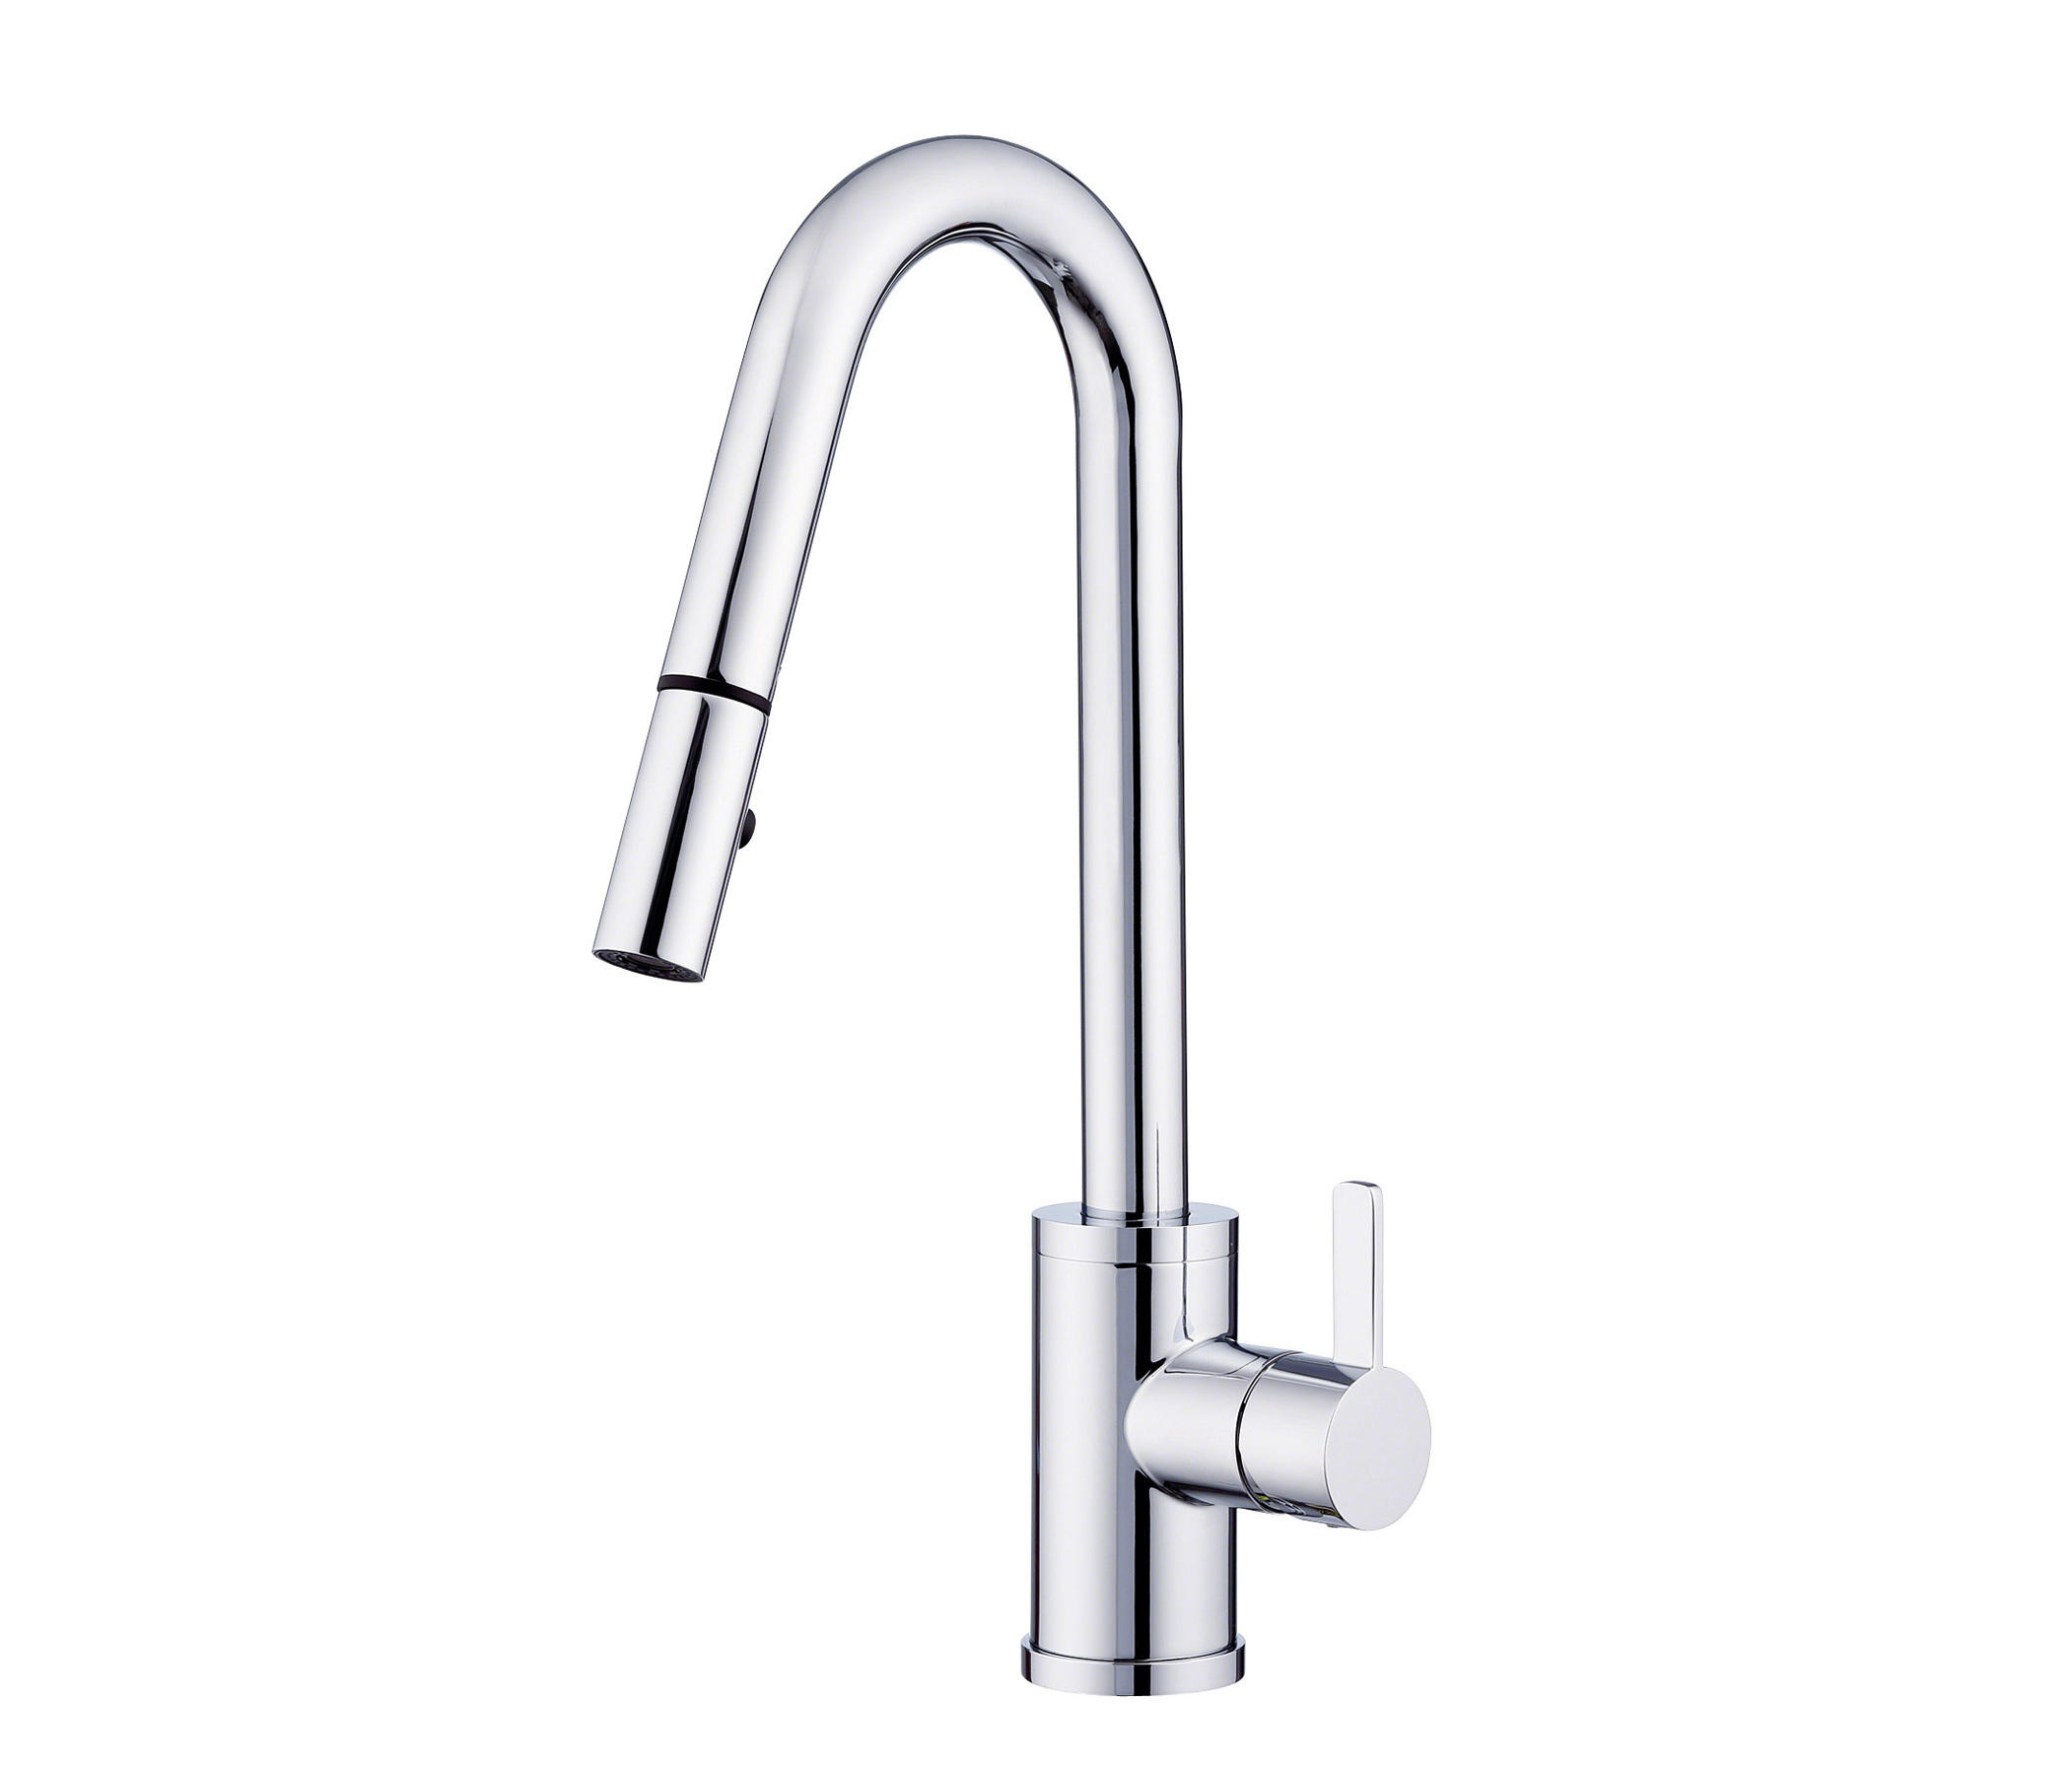 Amalfi™ | Single Handle Pull Down Kitchen Faucet, 1.75gpm By Danze |